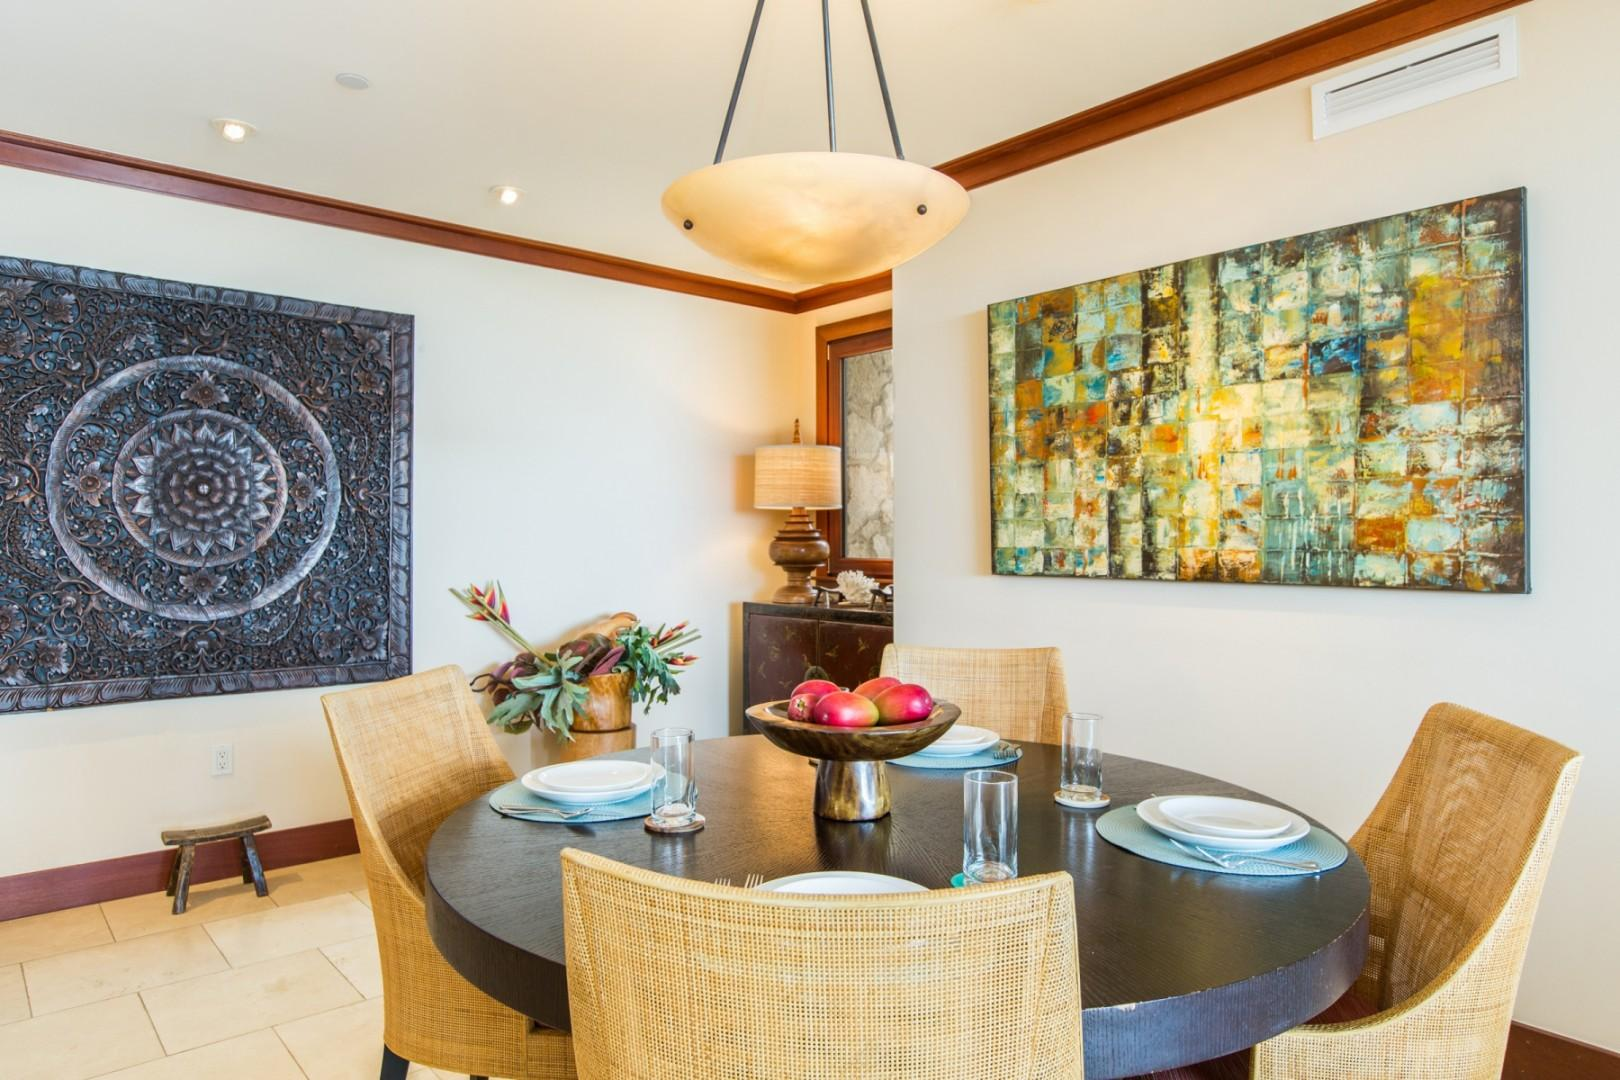 Dining area adjacent the open concept kitchen and living area is complimented with beautiful artwork and decor